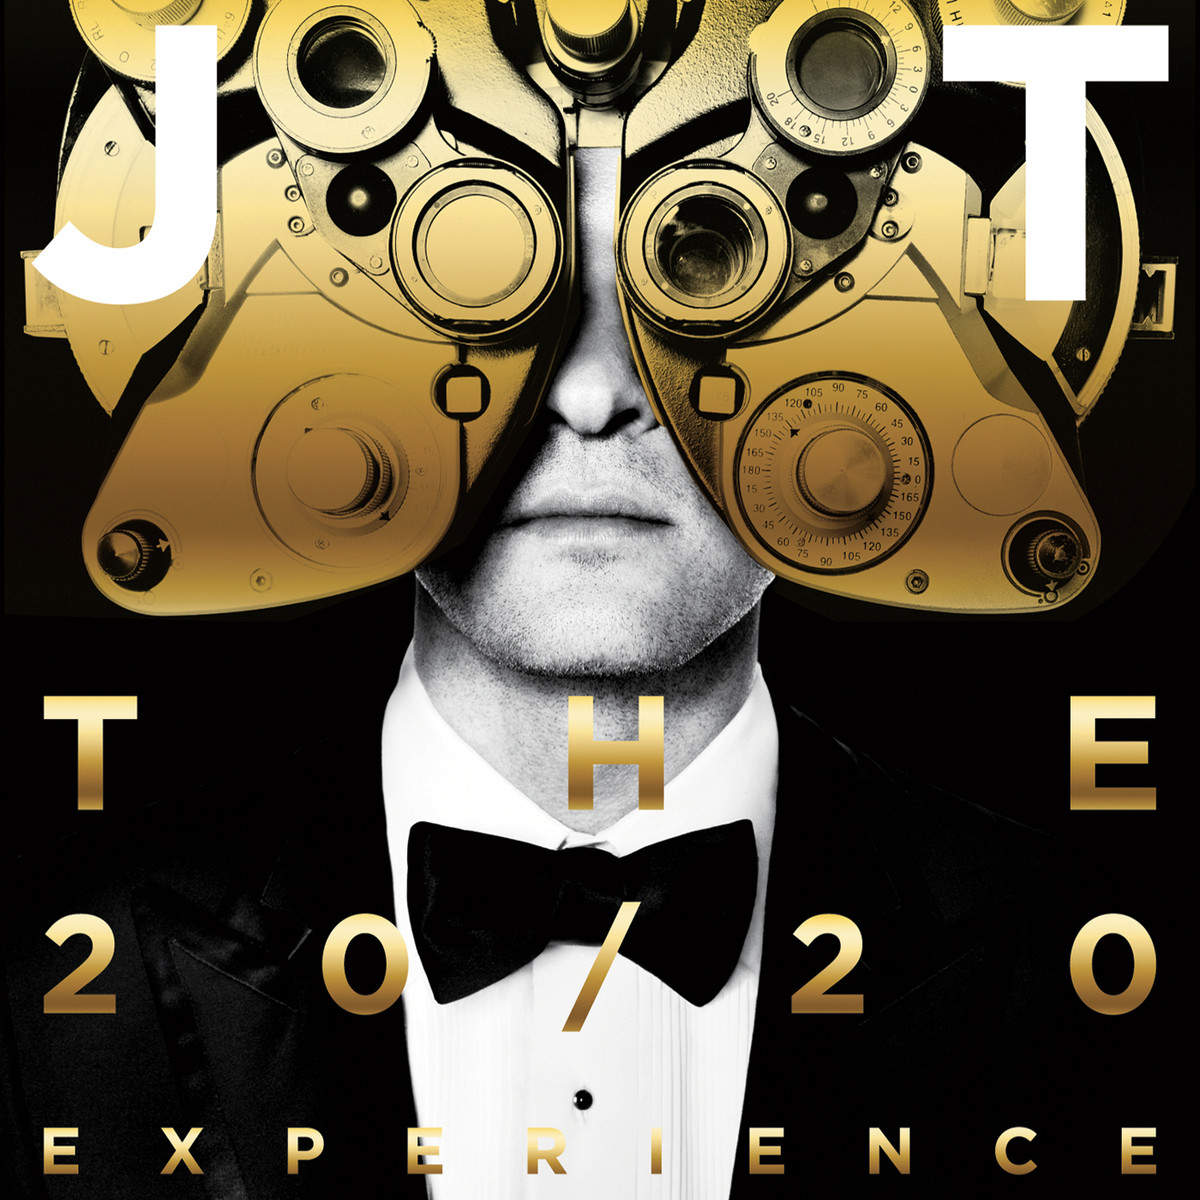 Justin Timberlake The 20 20 Experience 2 of 2 2013